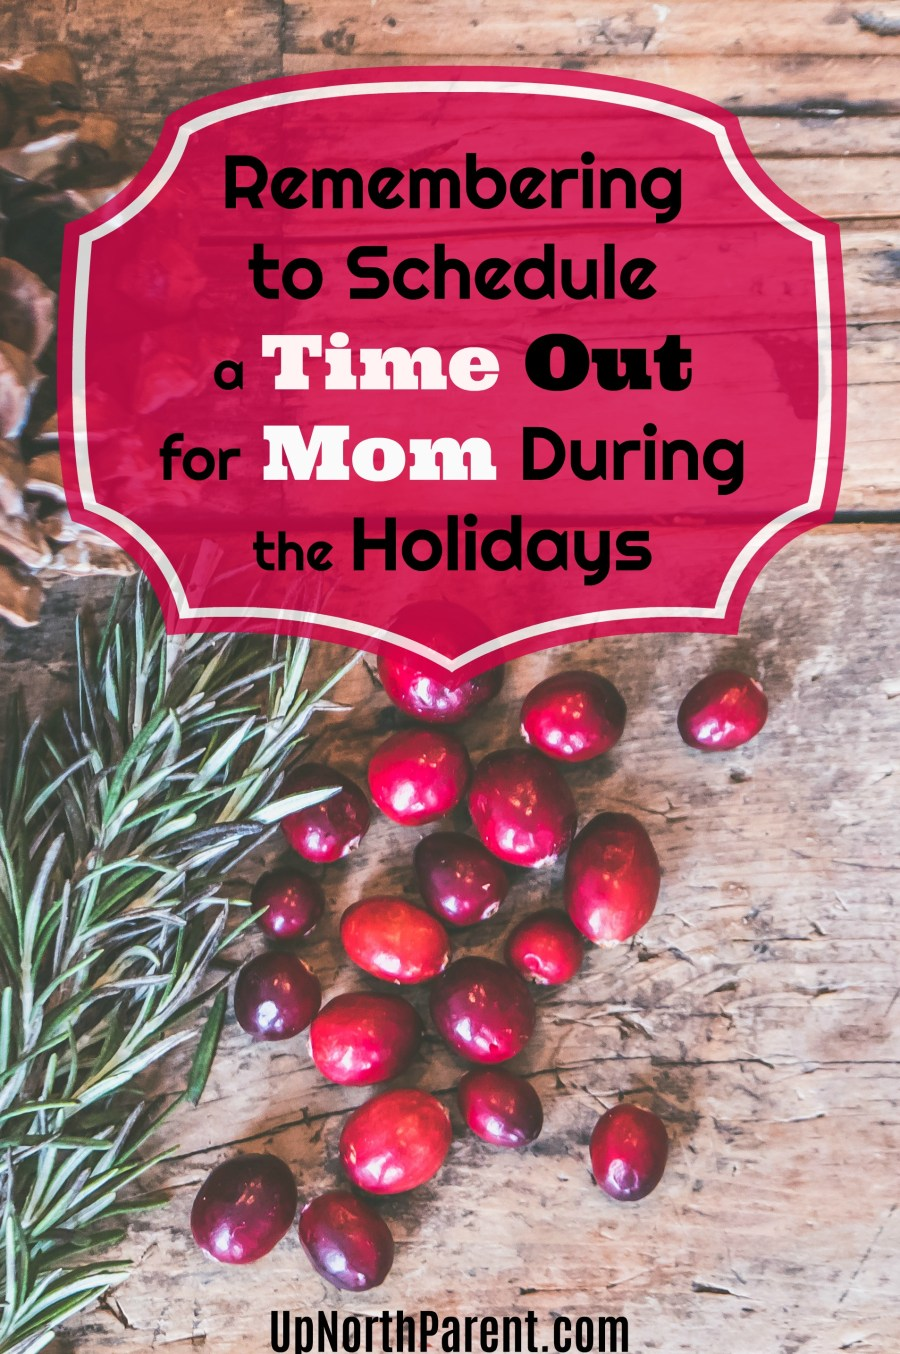 This time of year is a crazy busy time. We often lose track of our own self care. Remember to take a Time Out for Mom During the Holidays this year! #selfcare #holidays #timeout #holidayseason #Christmas #parenting